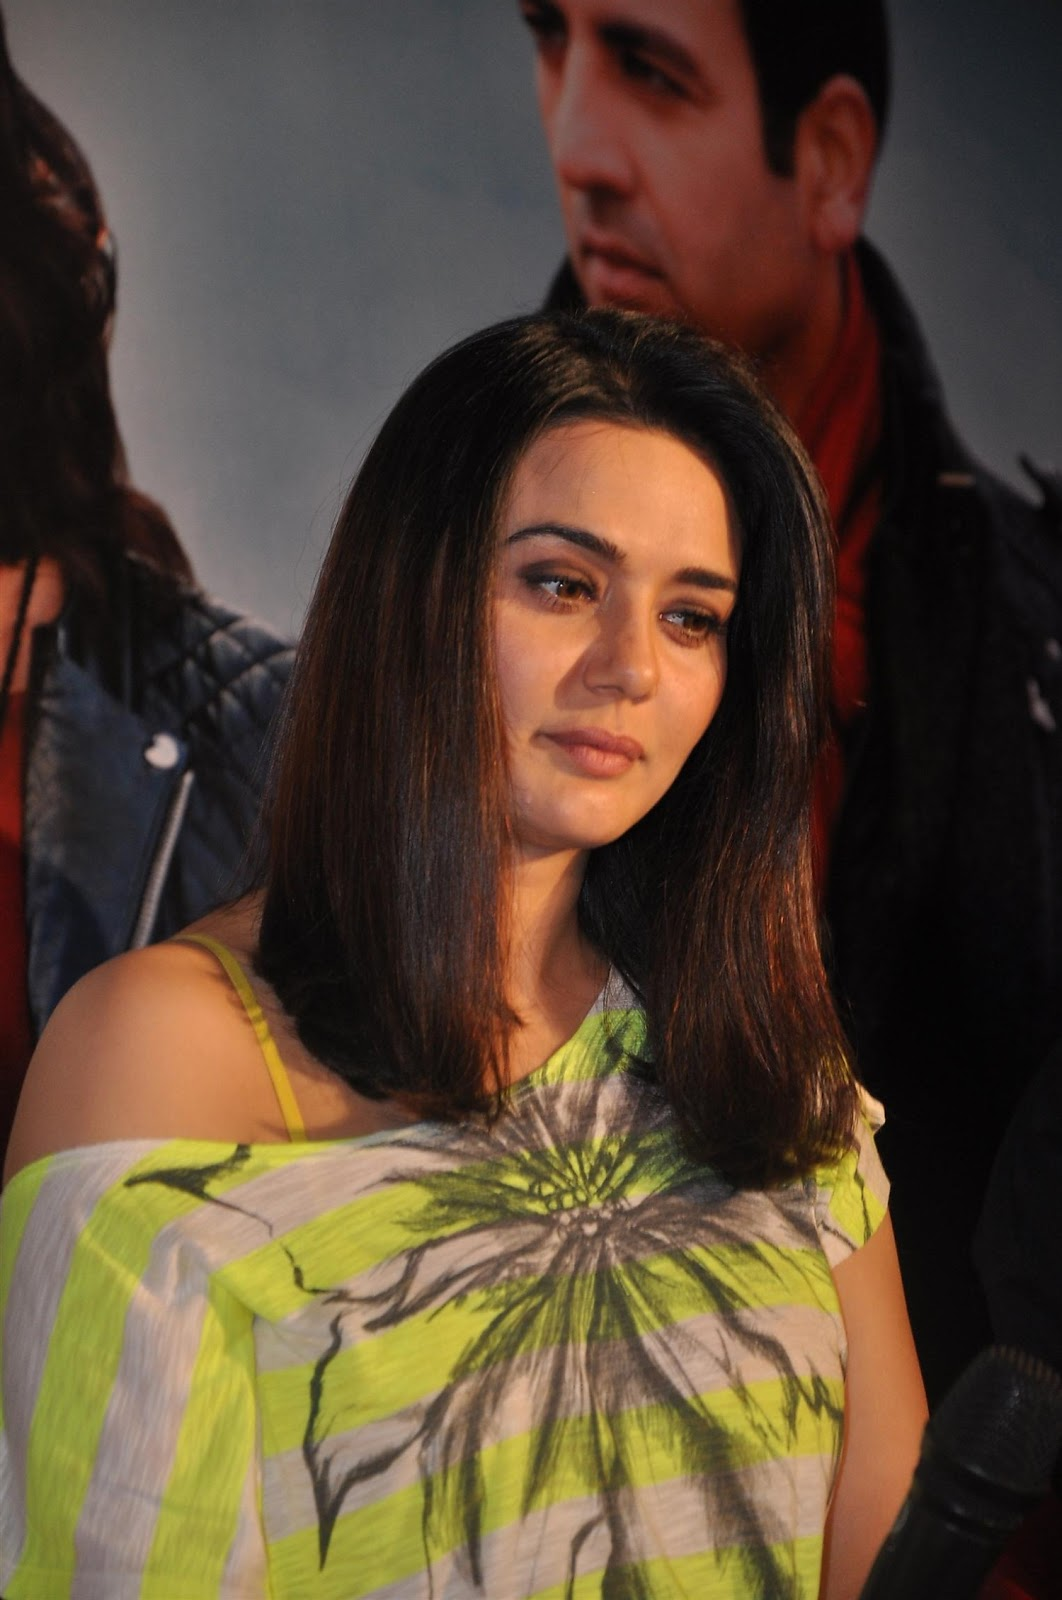 Bollywood Actress Gorgeous Dimple Girl Preity Zinta Full HD Images & Wallpapers